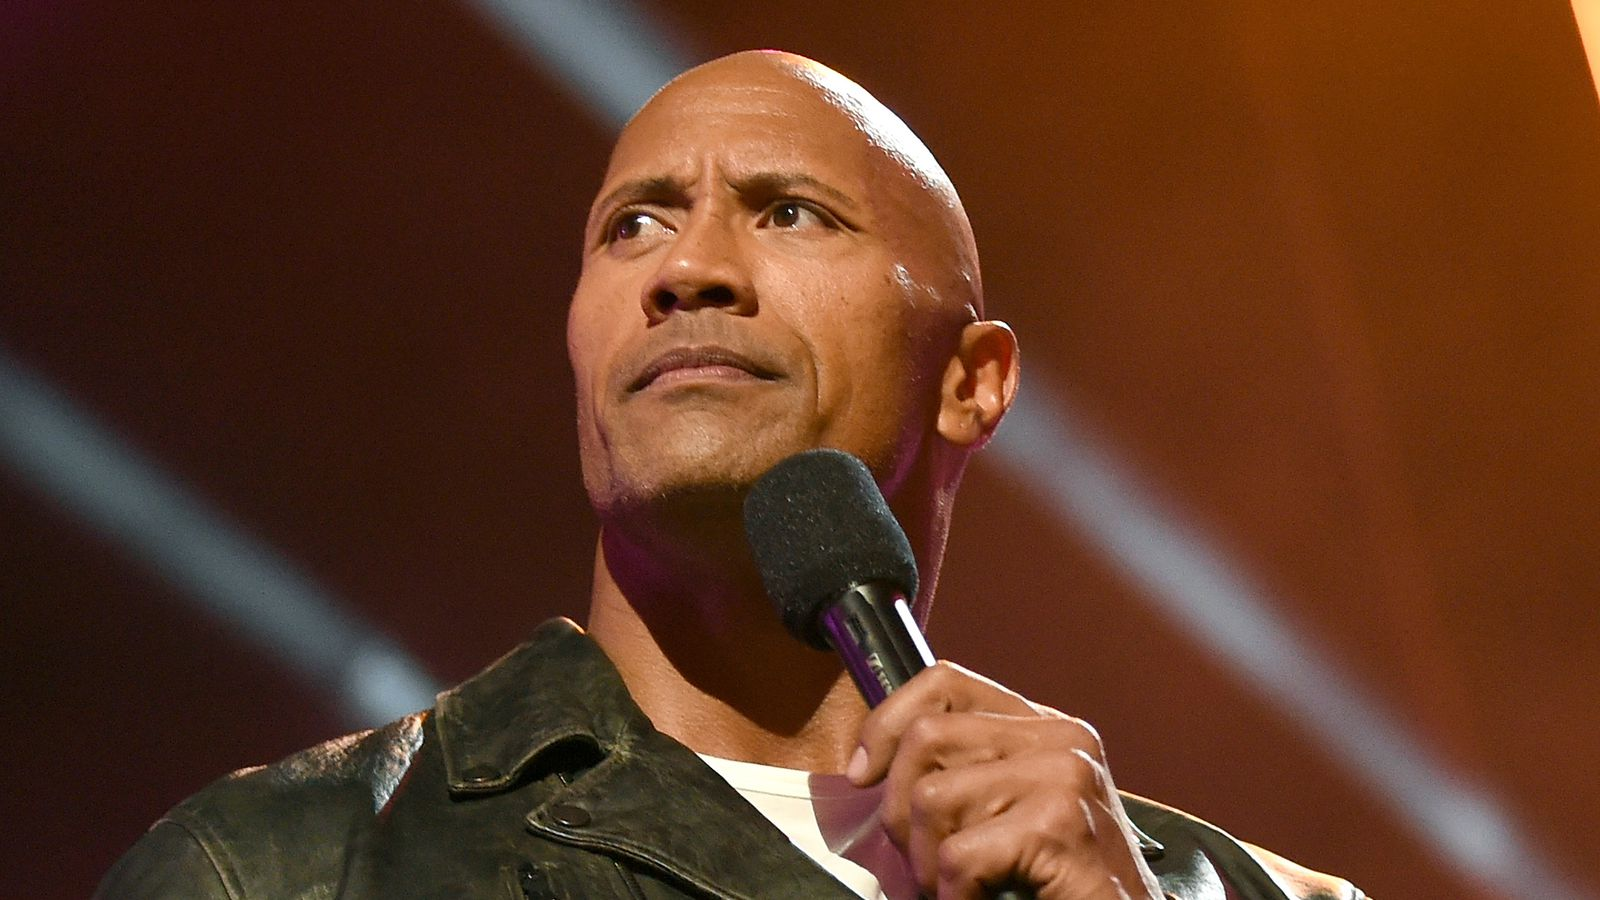 The Rock considered training to become UFC fighter